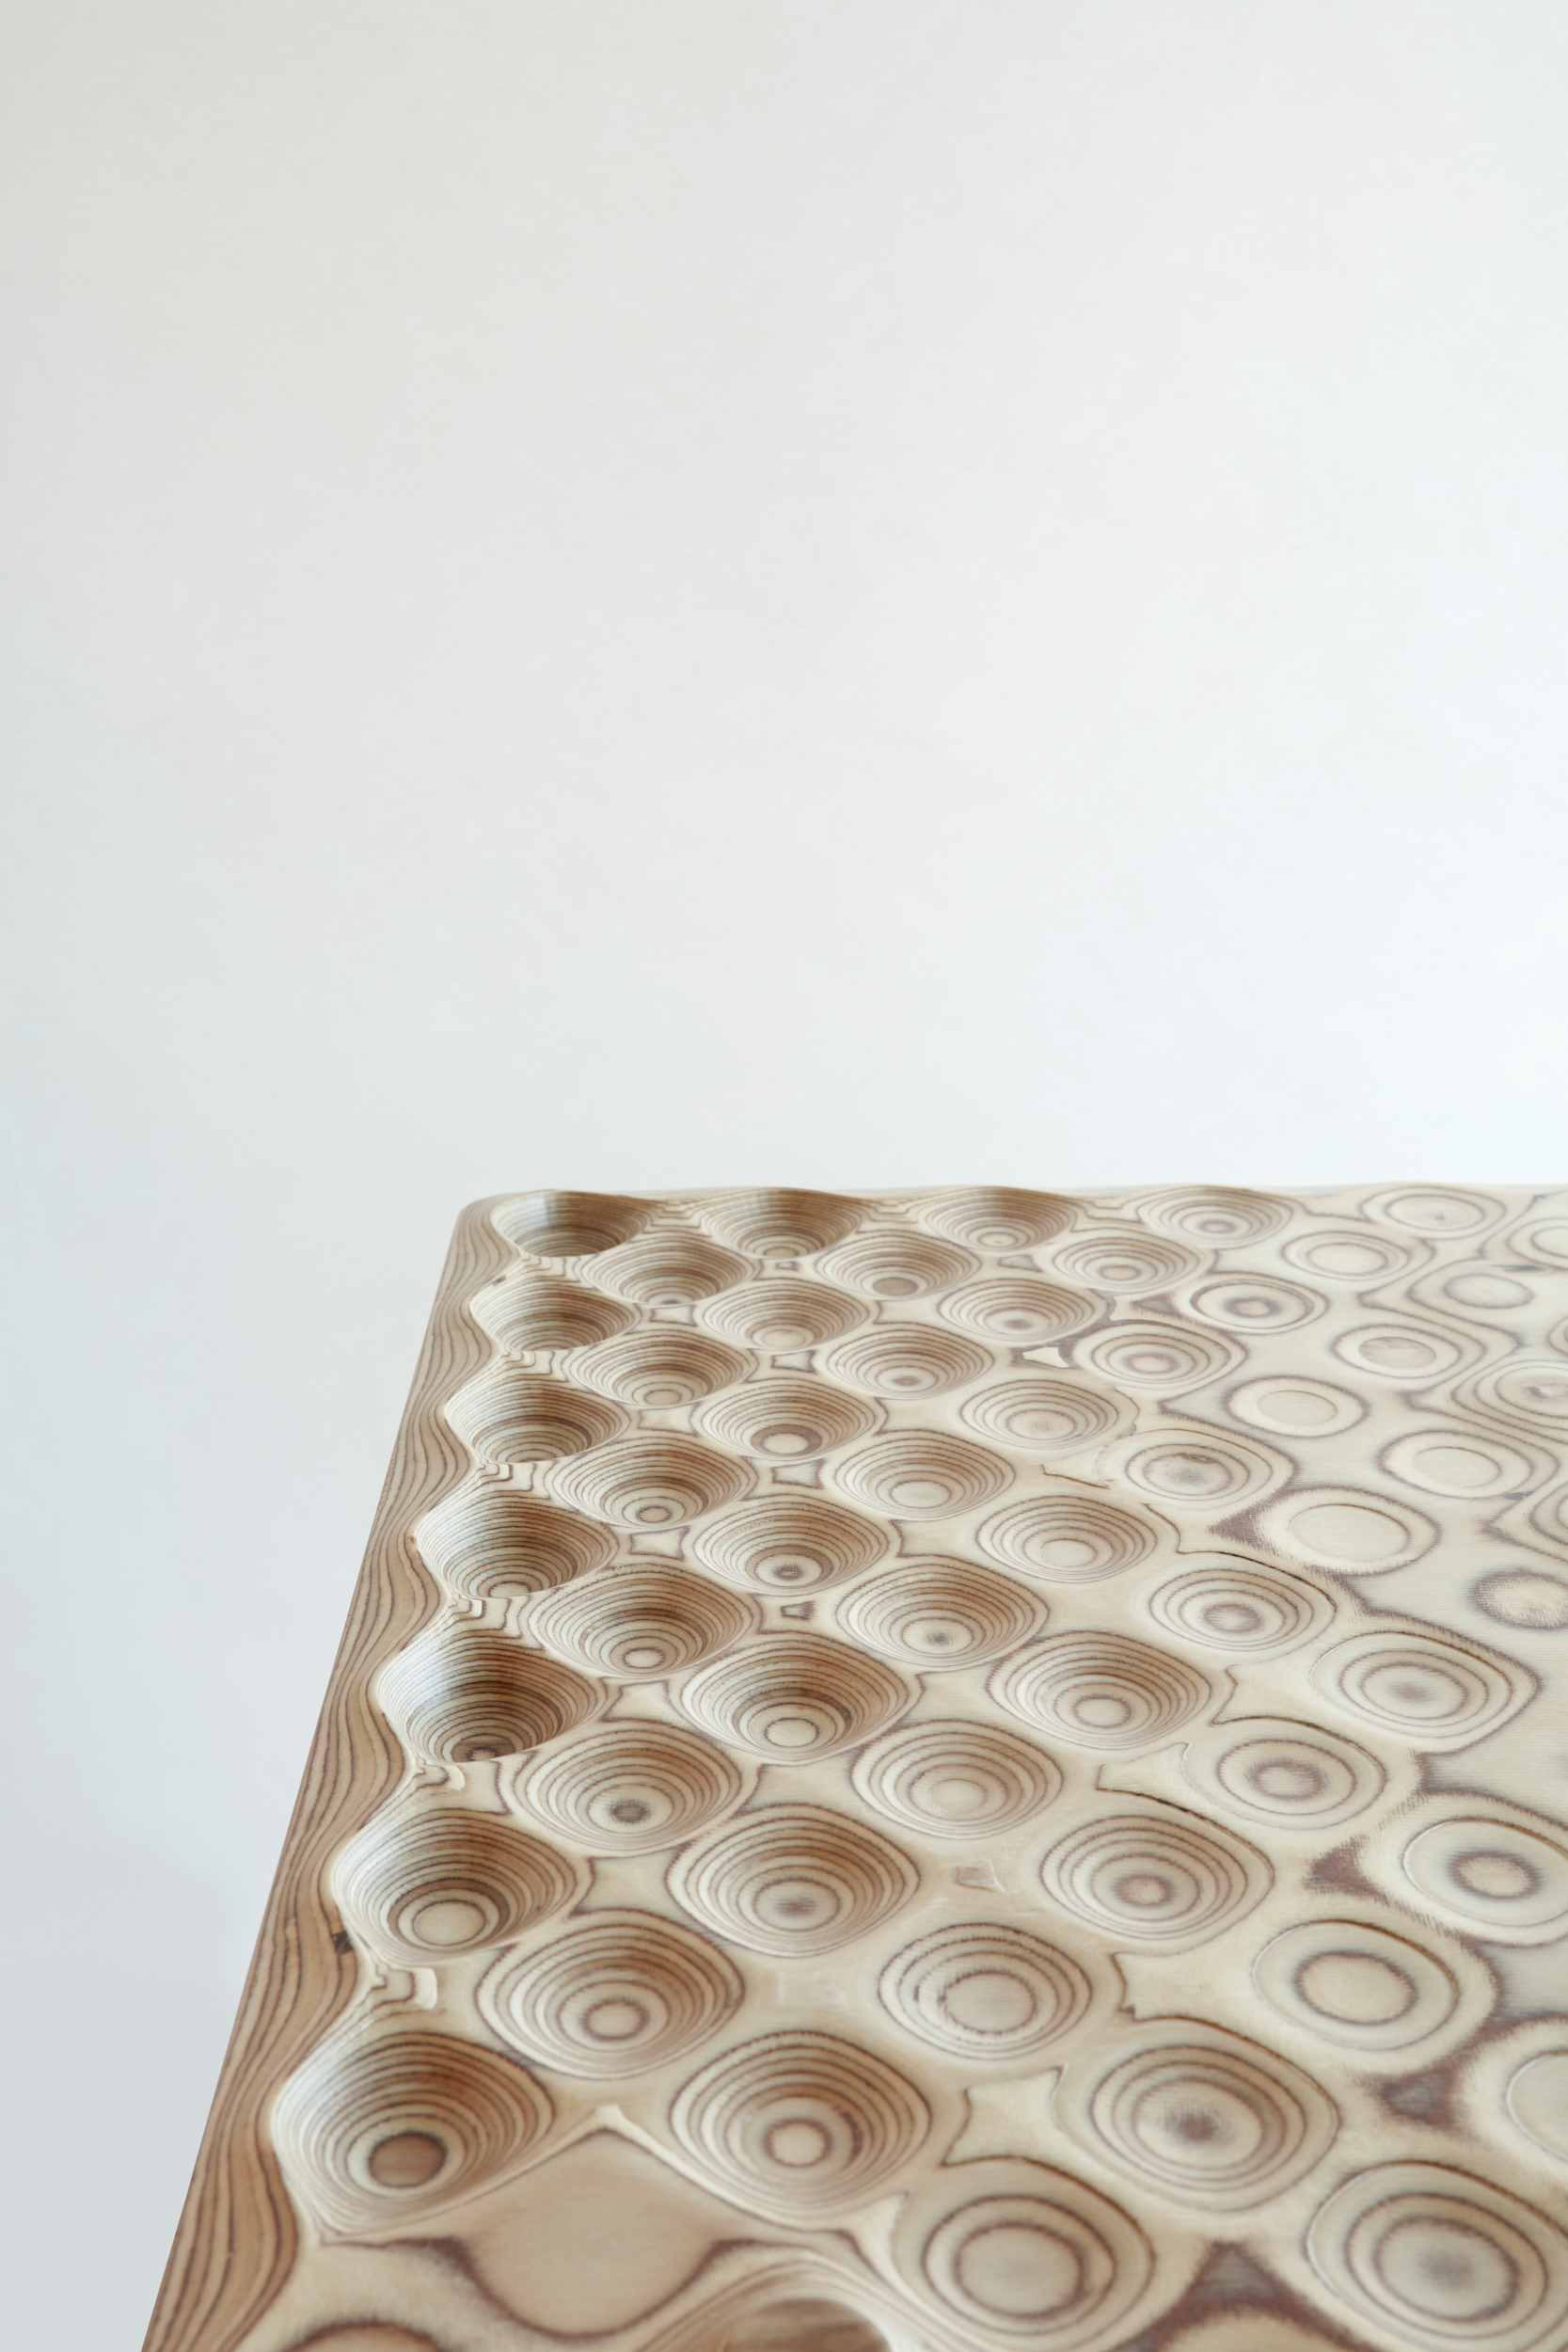 Thari Display Table - Layth Mahdi + Studio.d04